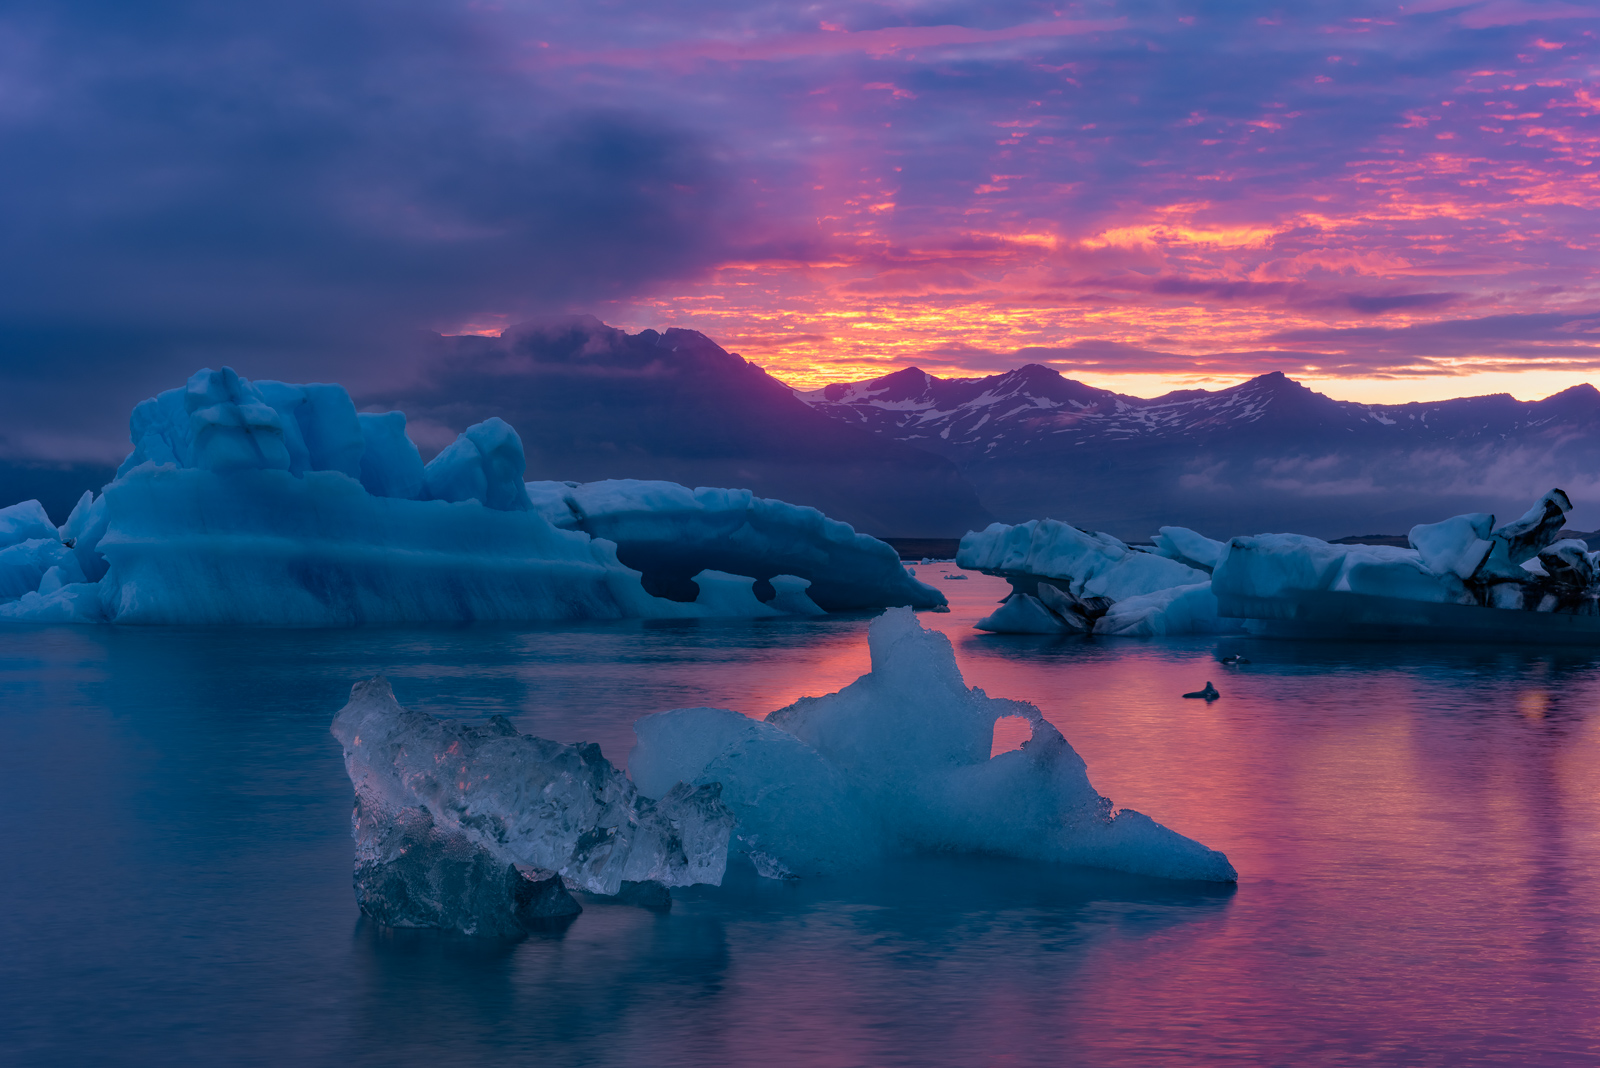 Huge iceburgs at sunset in Jökulsárlón, Iceland.Add beauty to your space with a Joseph Rossbach limited edition photography...